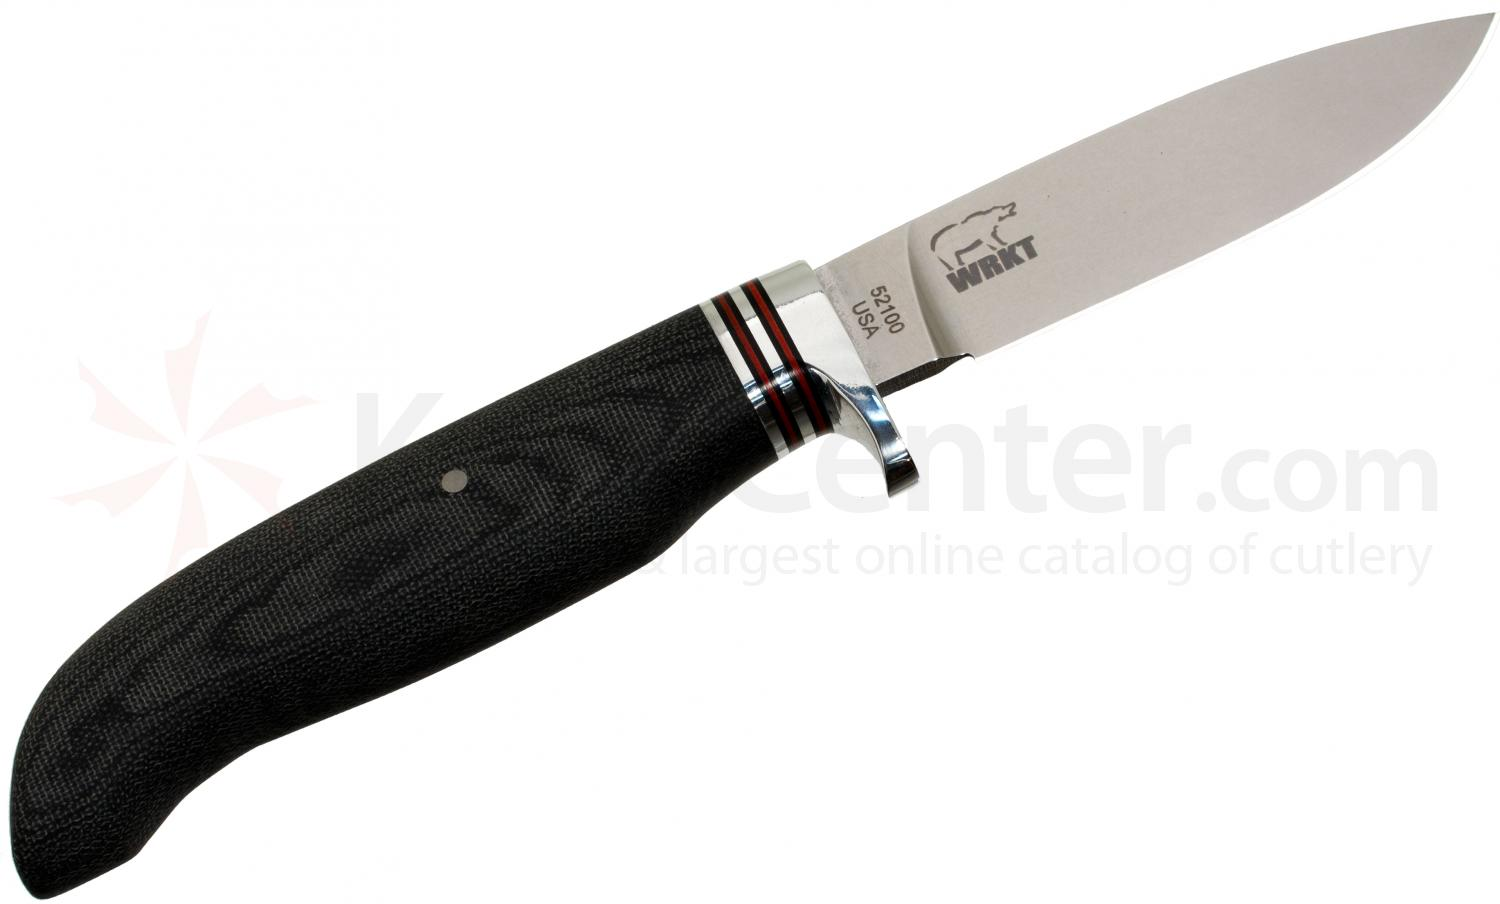 White River Knives Drop Point Hunter Fixed 3.25 inch 52100 Carbon Blade, Black Micarta Handle, Kydex Sheath